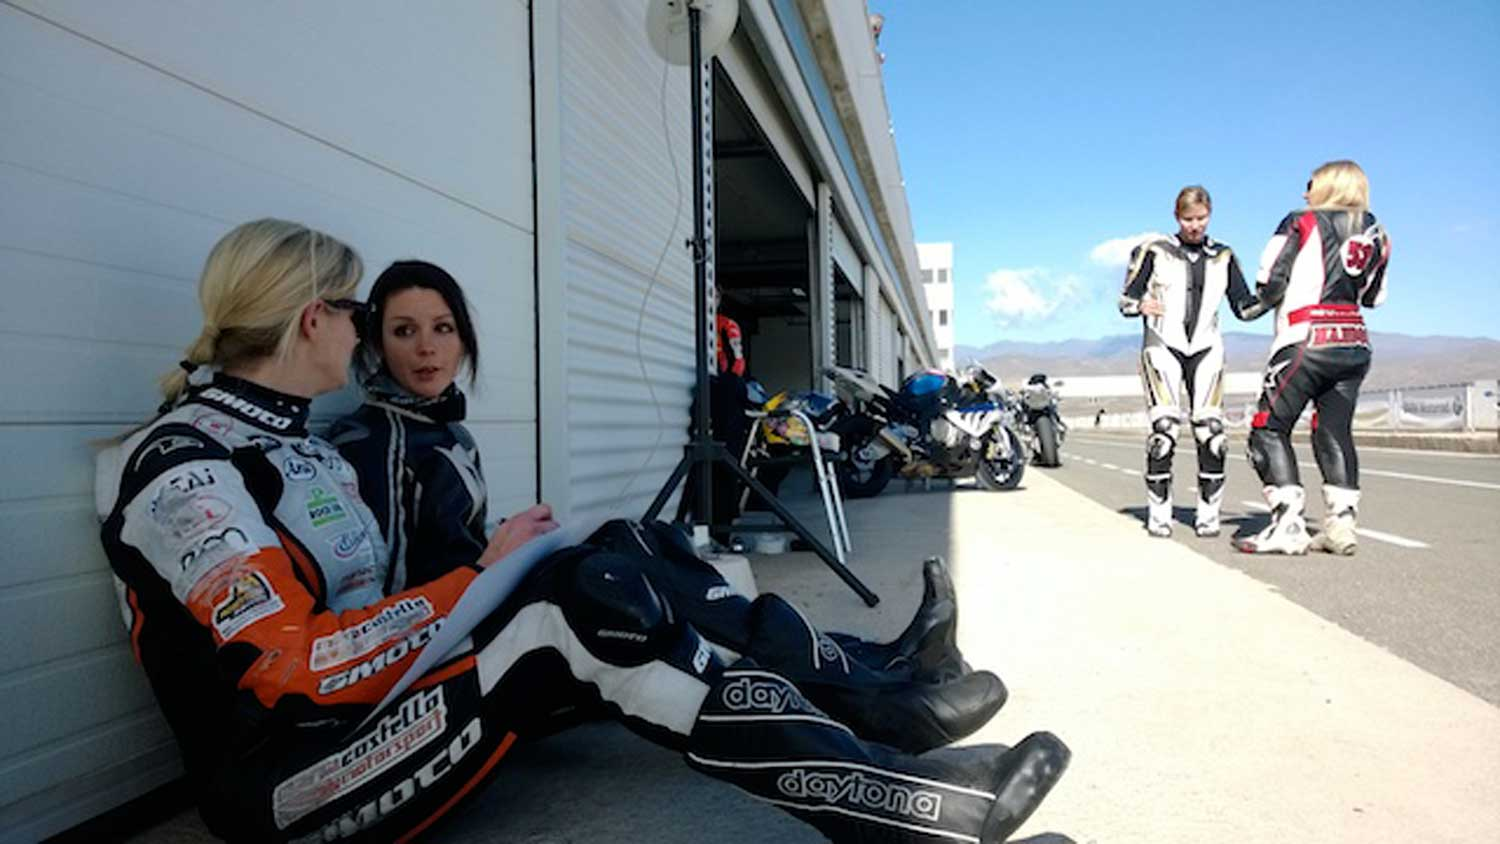 Costello-gives-some-advice-while-coaching-at-the-Almeria-FIM-training-camp-earlier-this-year.